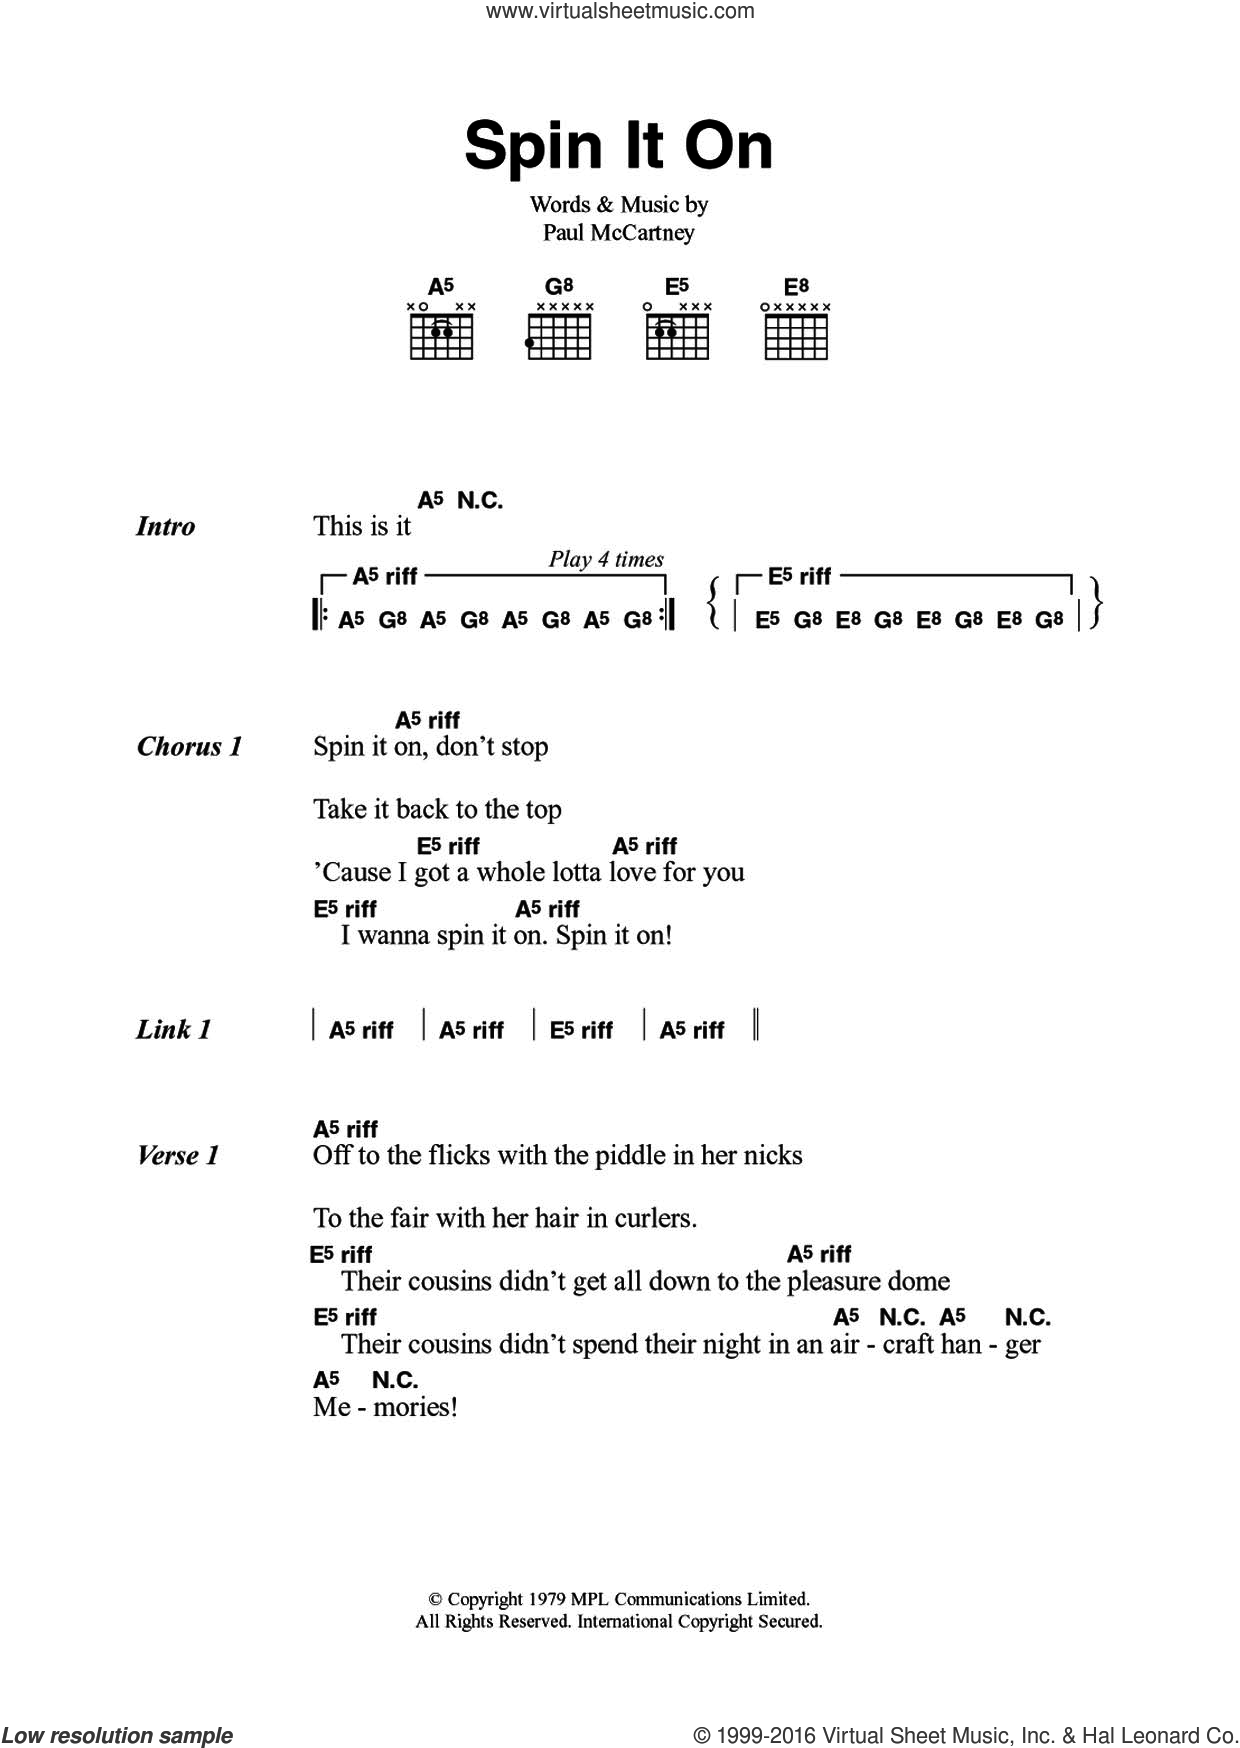 Spin It On sheet music for guitar (chords) by Paul McCartney